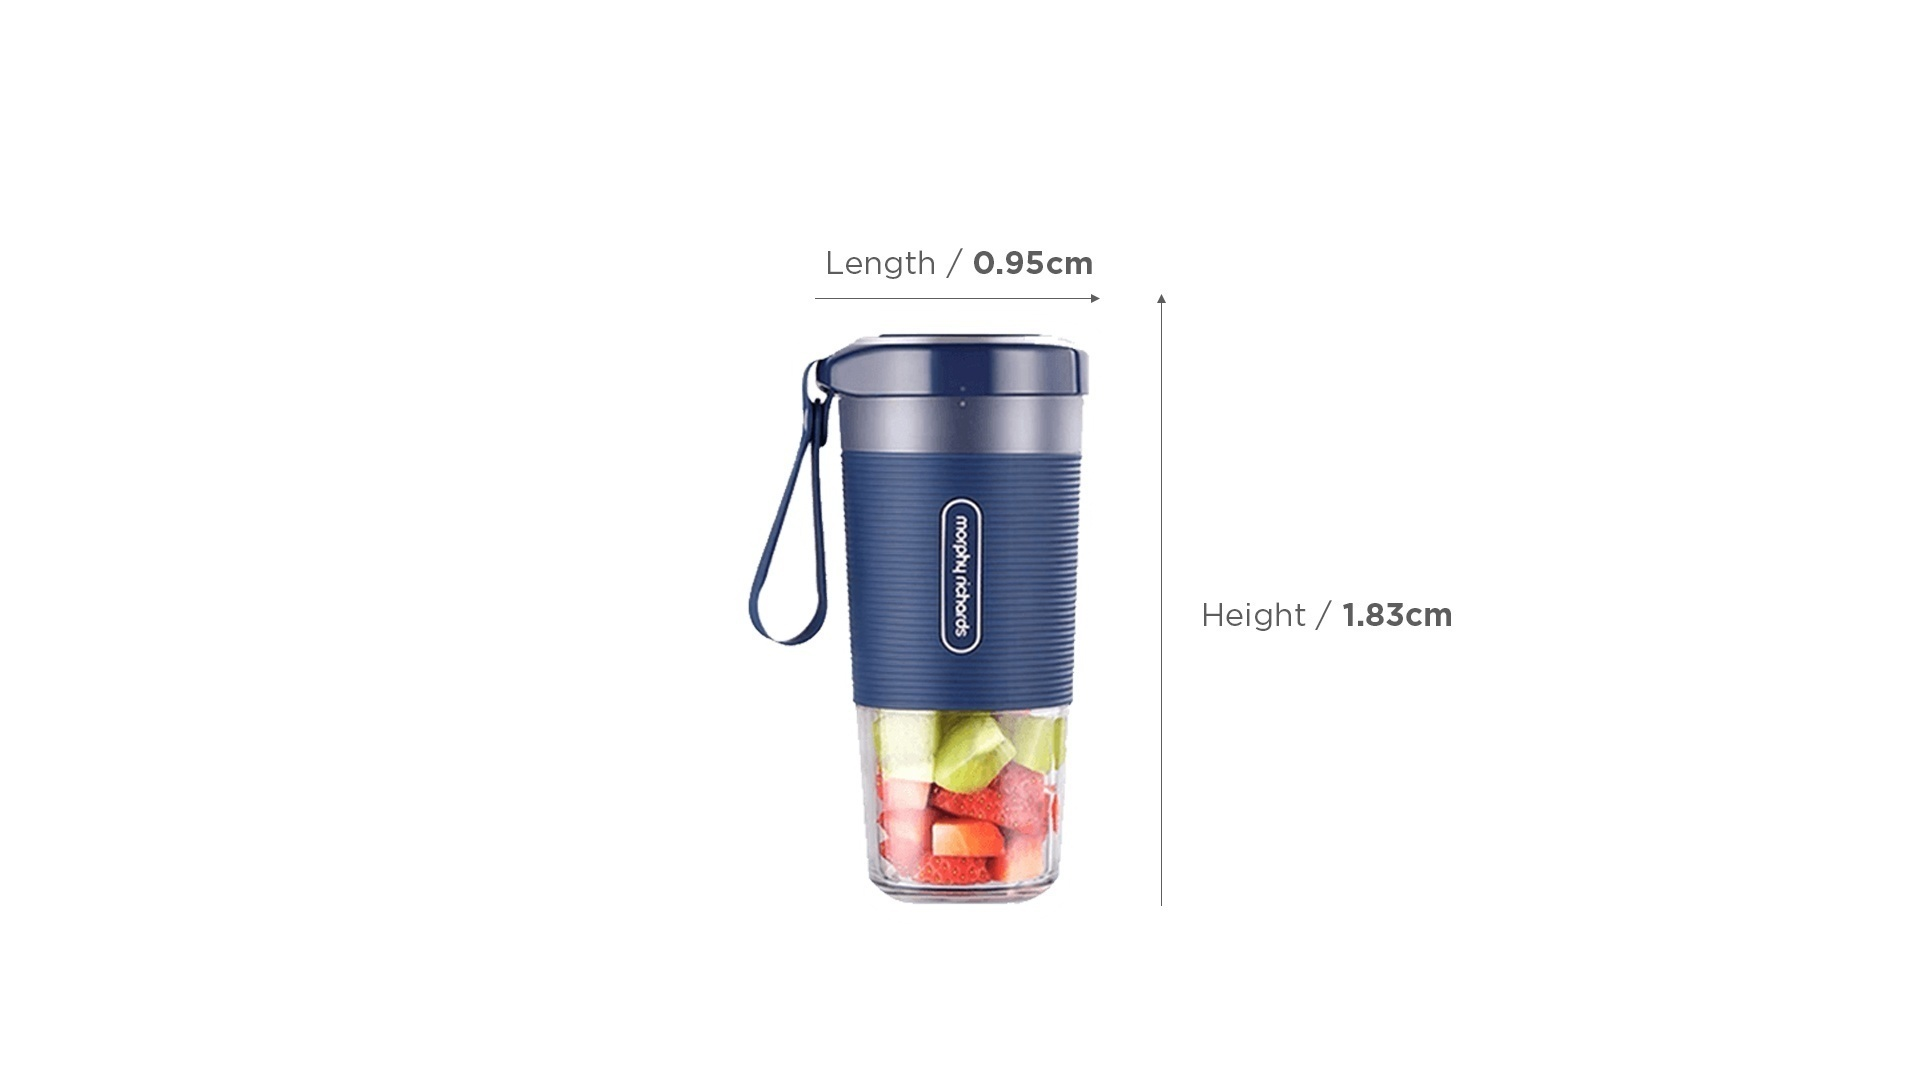 Portable Juicer 21 - Sneapy